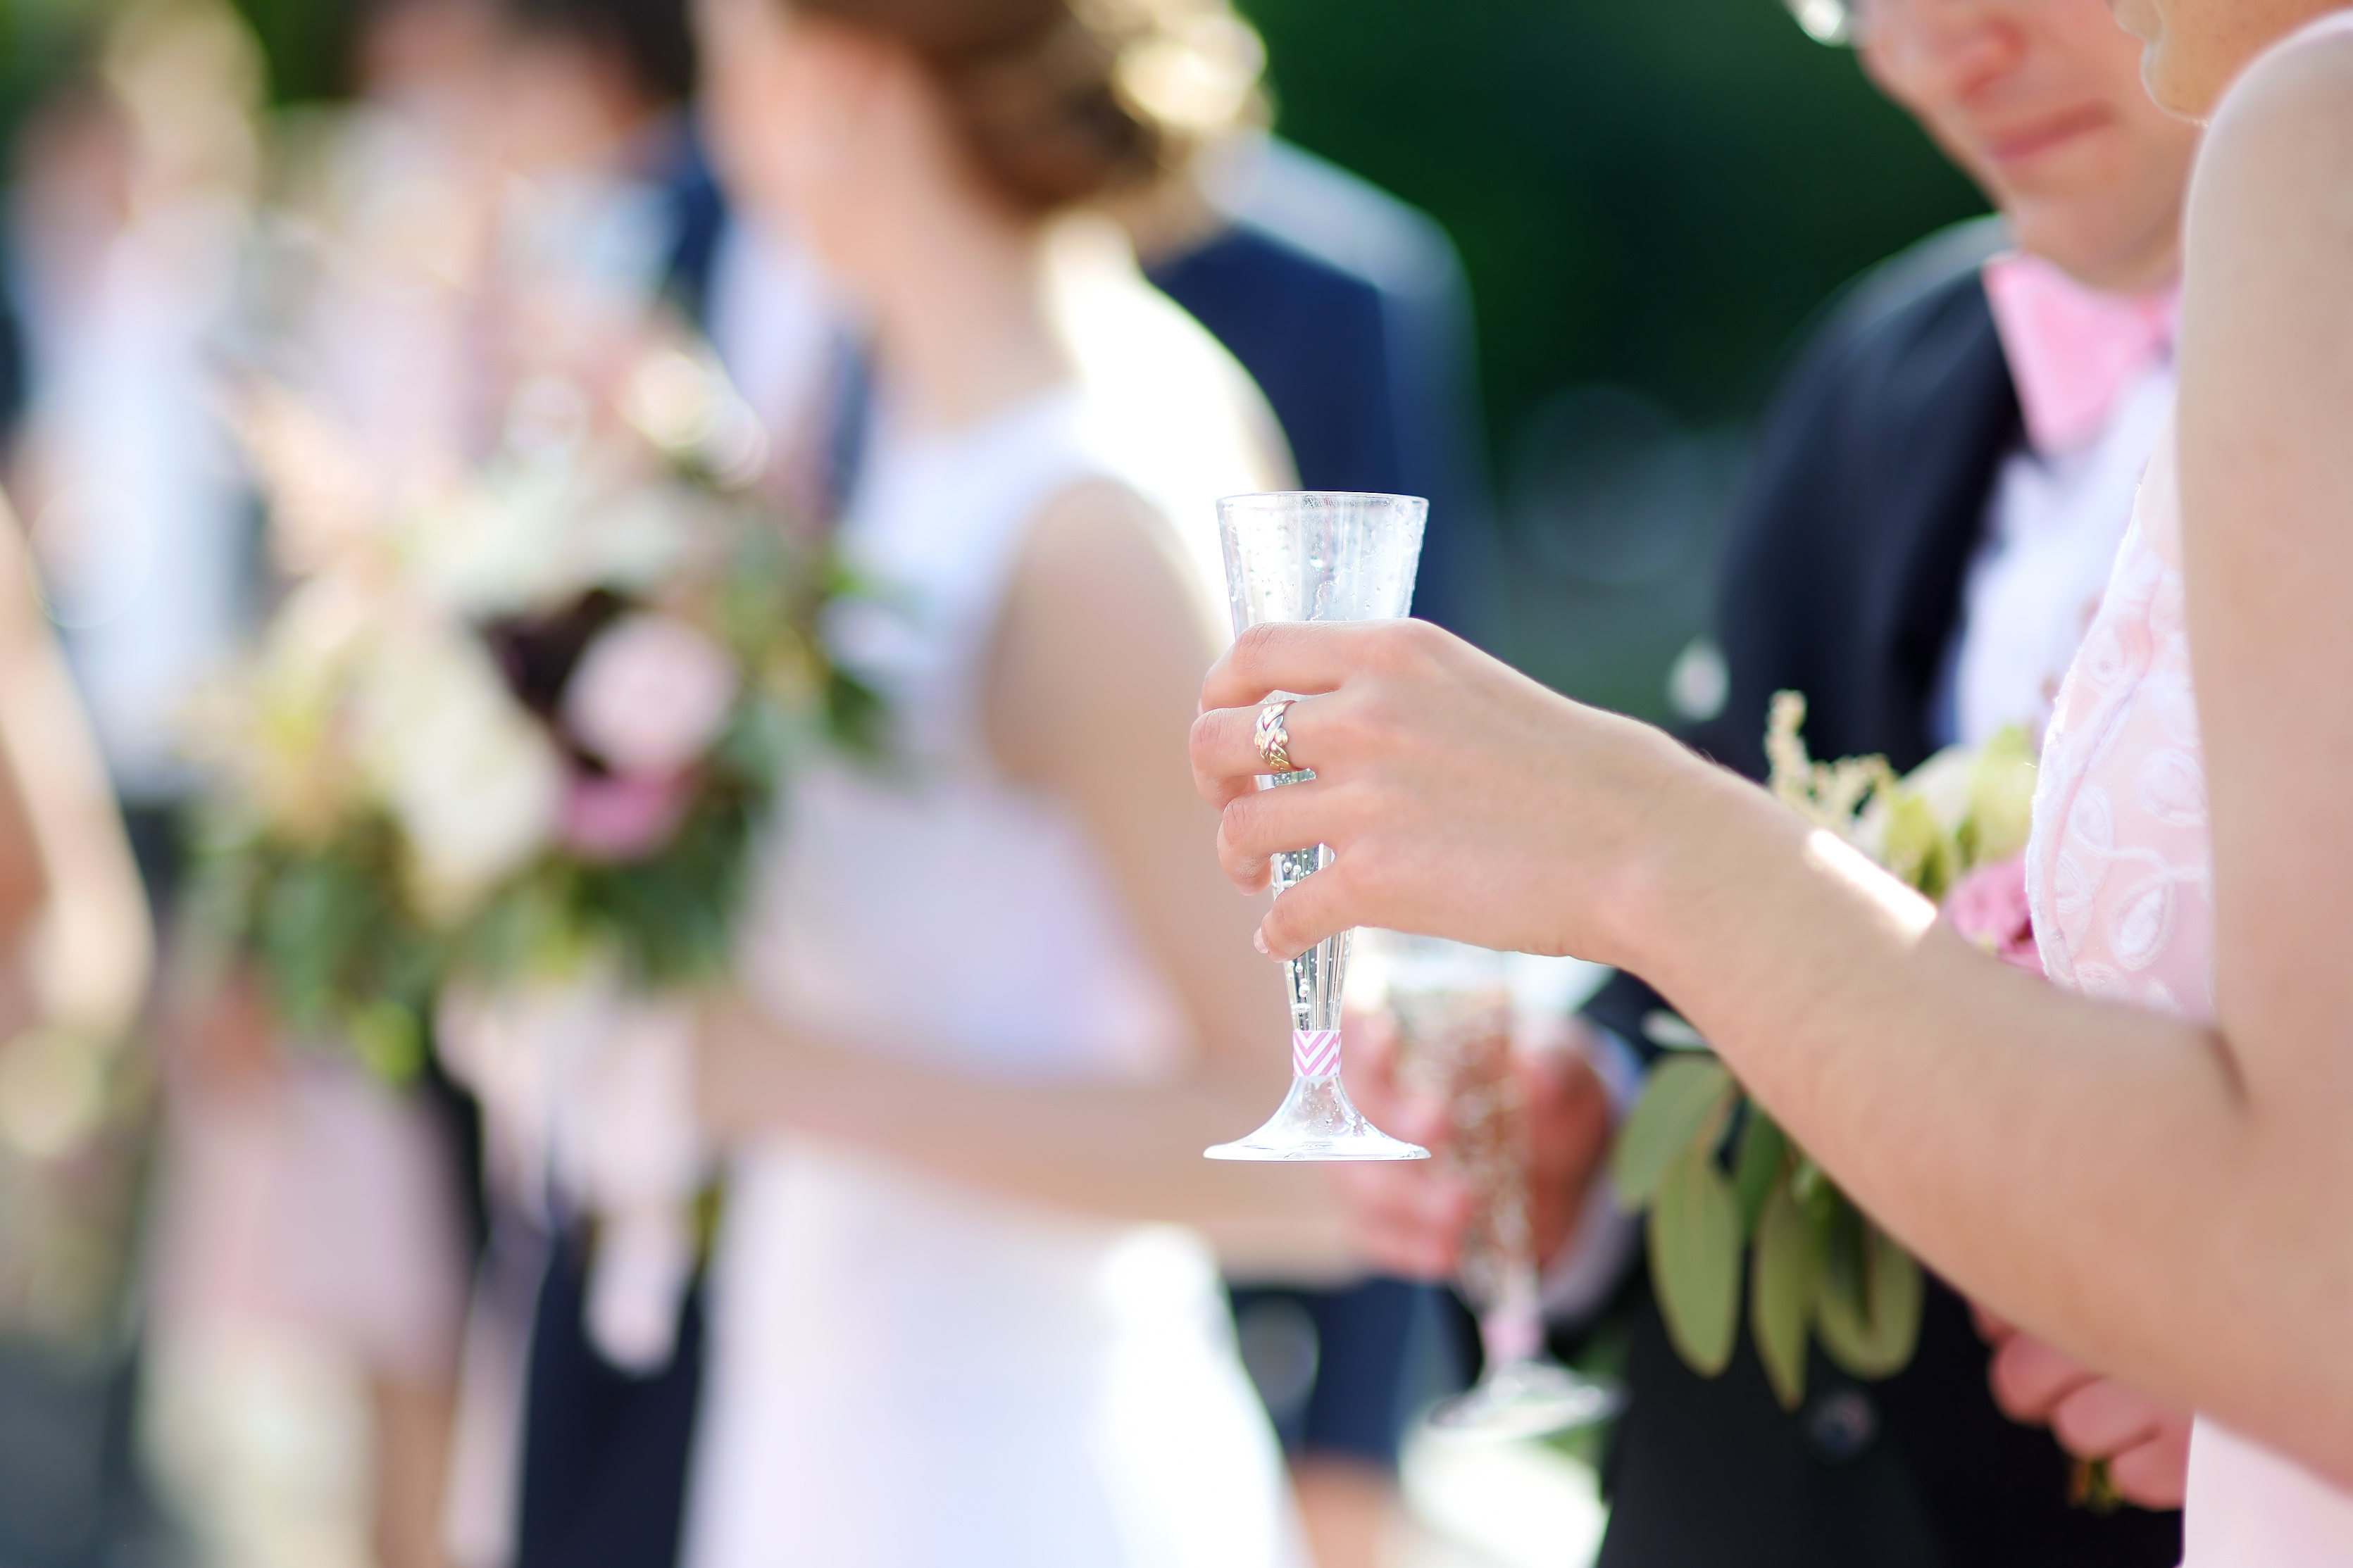 Woman holding a glass of champagne at some festive event, party or wedding reception